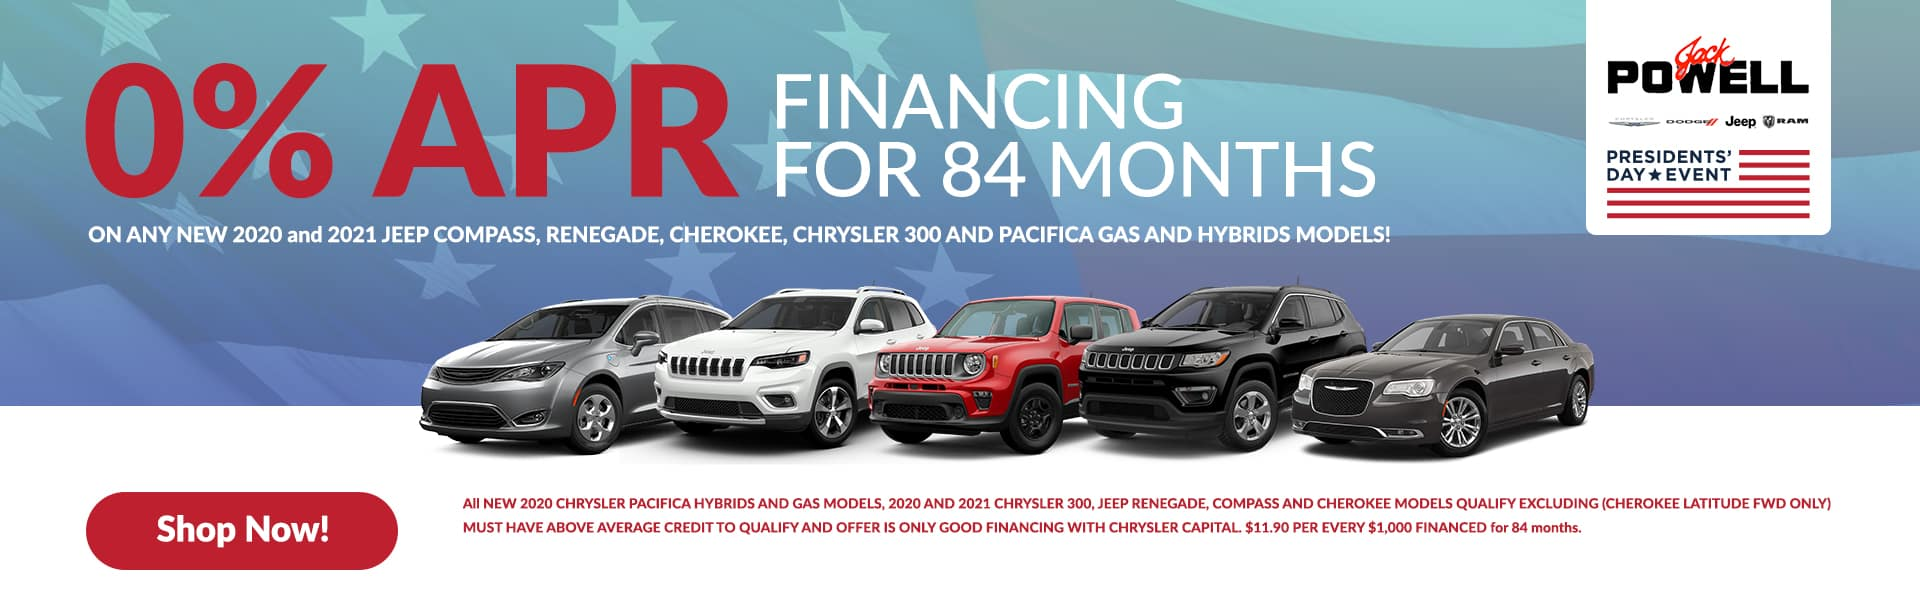 0% APR FINANCING FOR 84 MONTHS!!